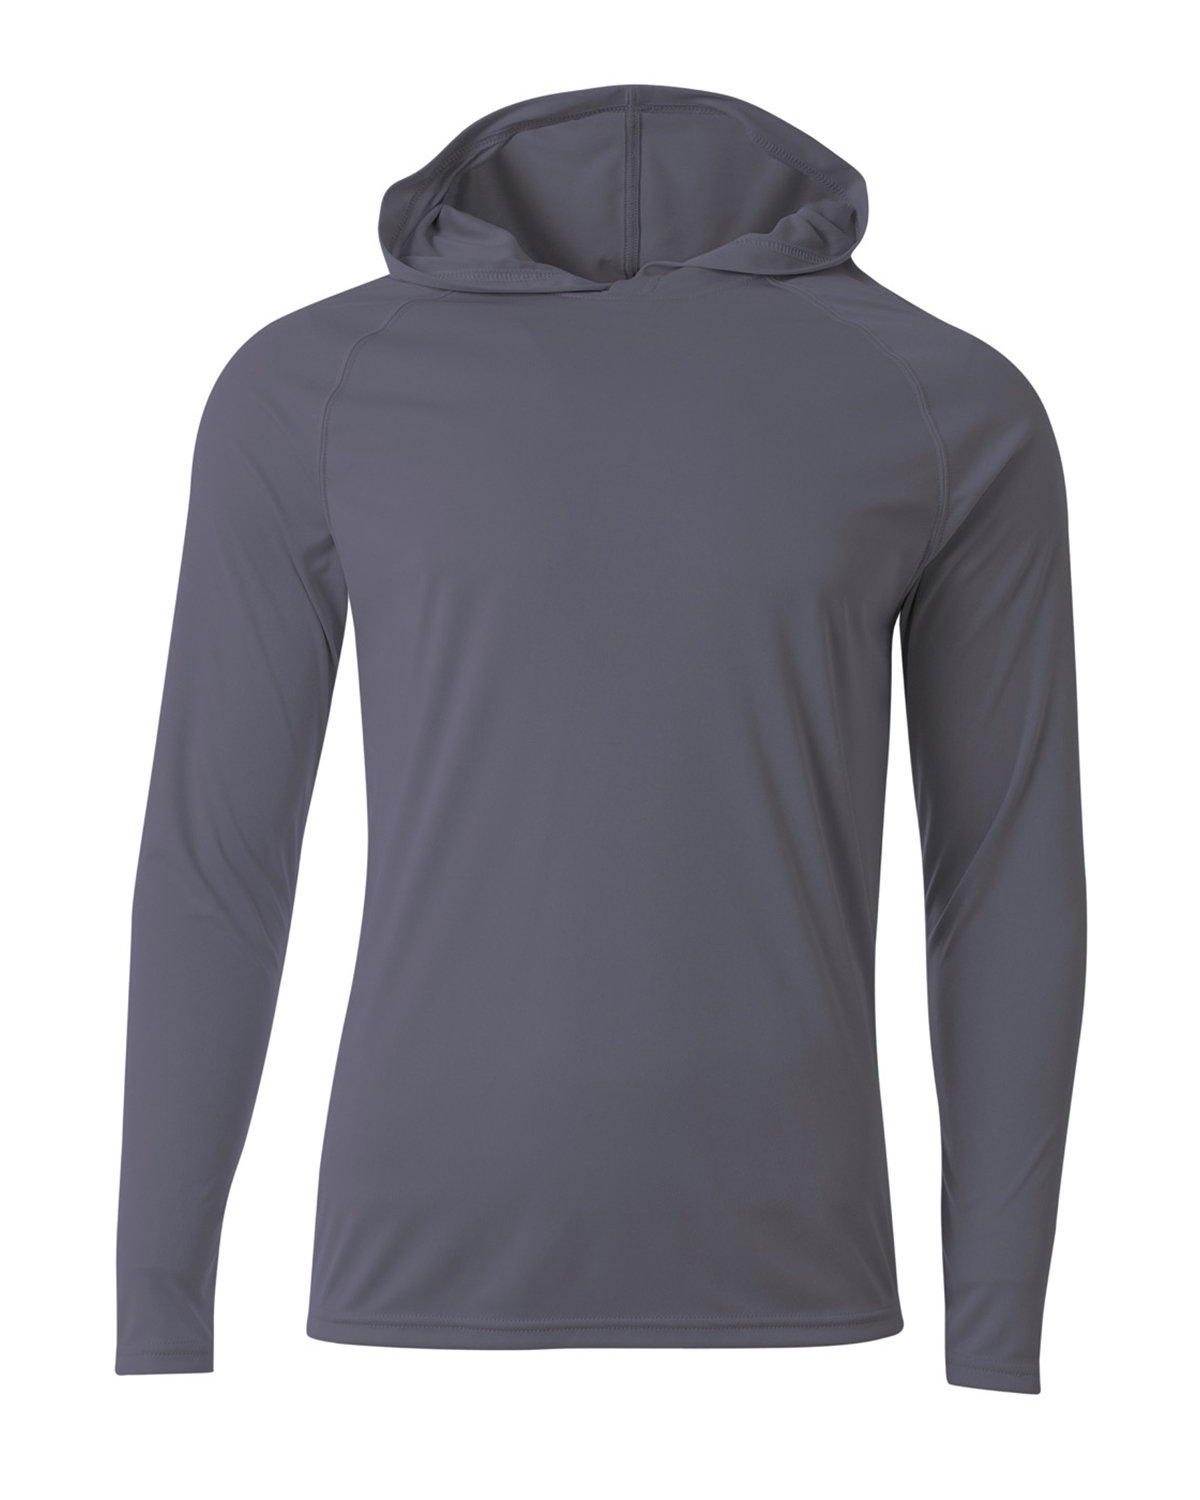 A4 Men's Cooling Performance Long-Sleeve Hooded T-shirt GRAPHITE